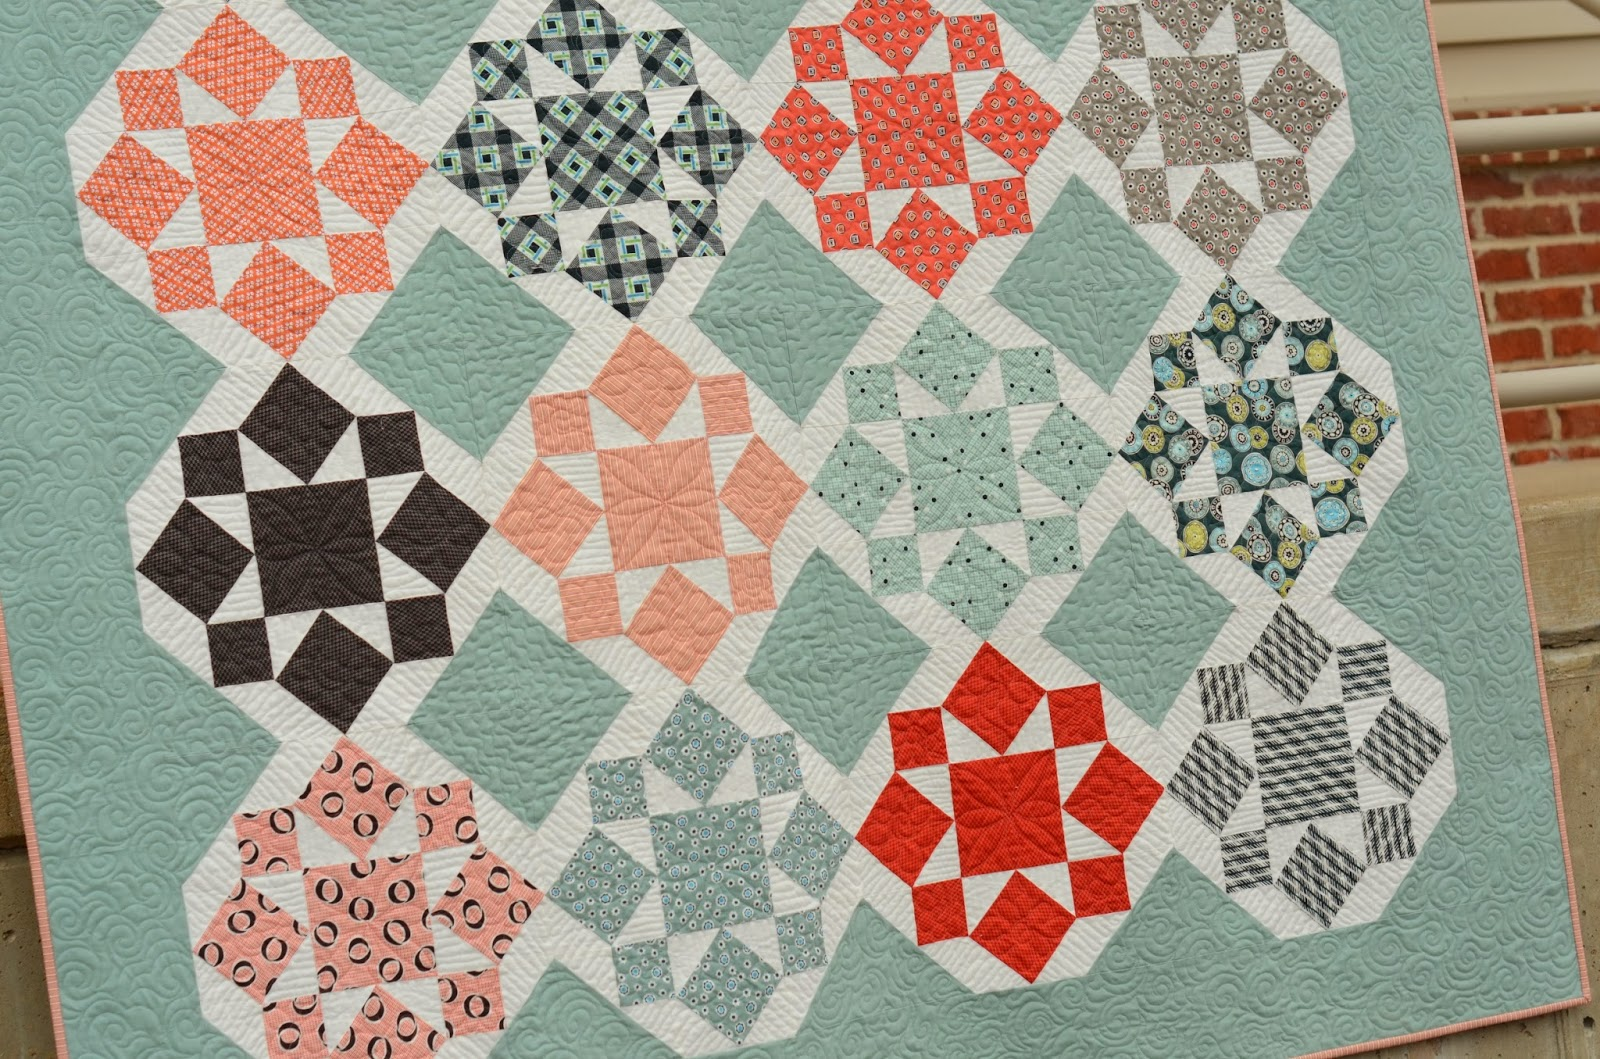 WIP Wednesday: With Guest Host Cindy from Hyacinth Quilt Designs ... : hyacinth quilt designs - Adamdwight.com